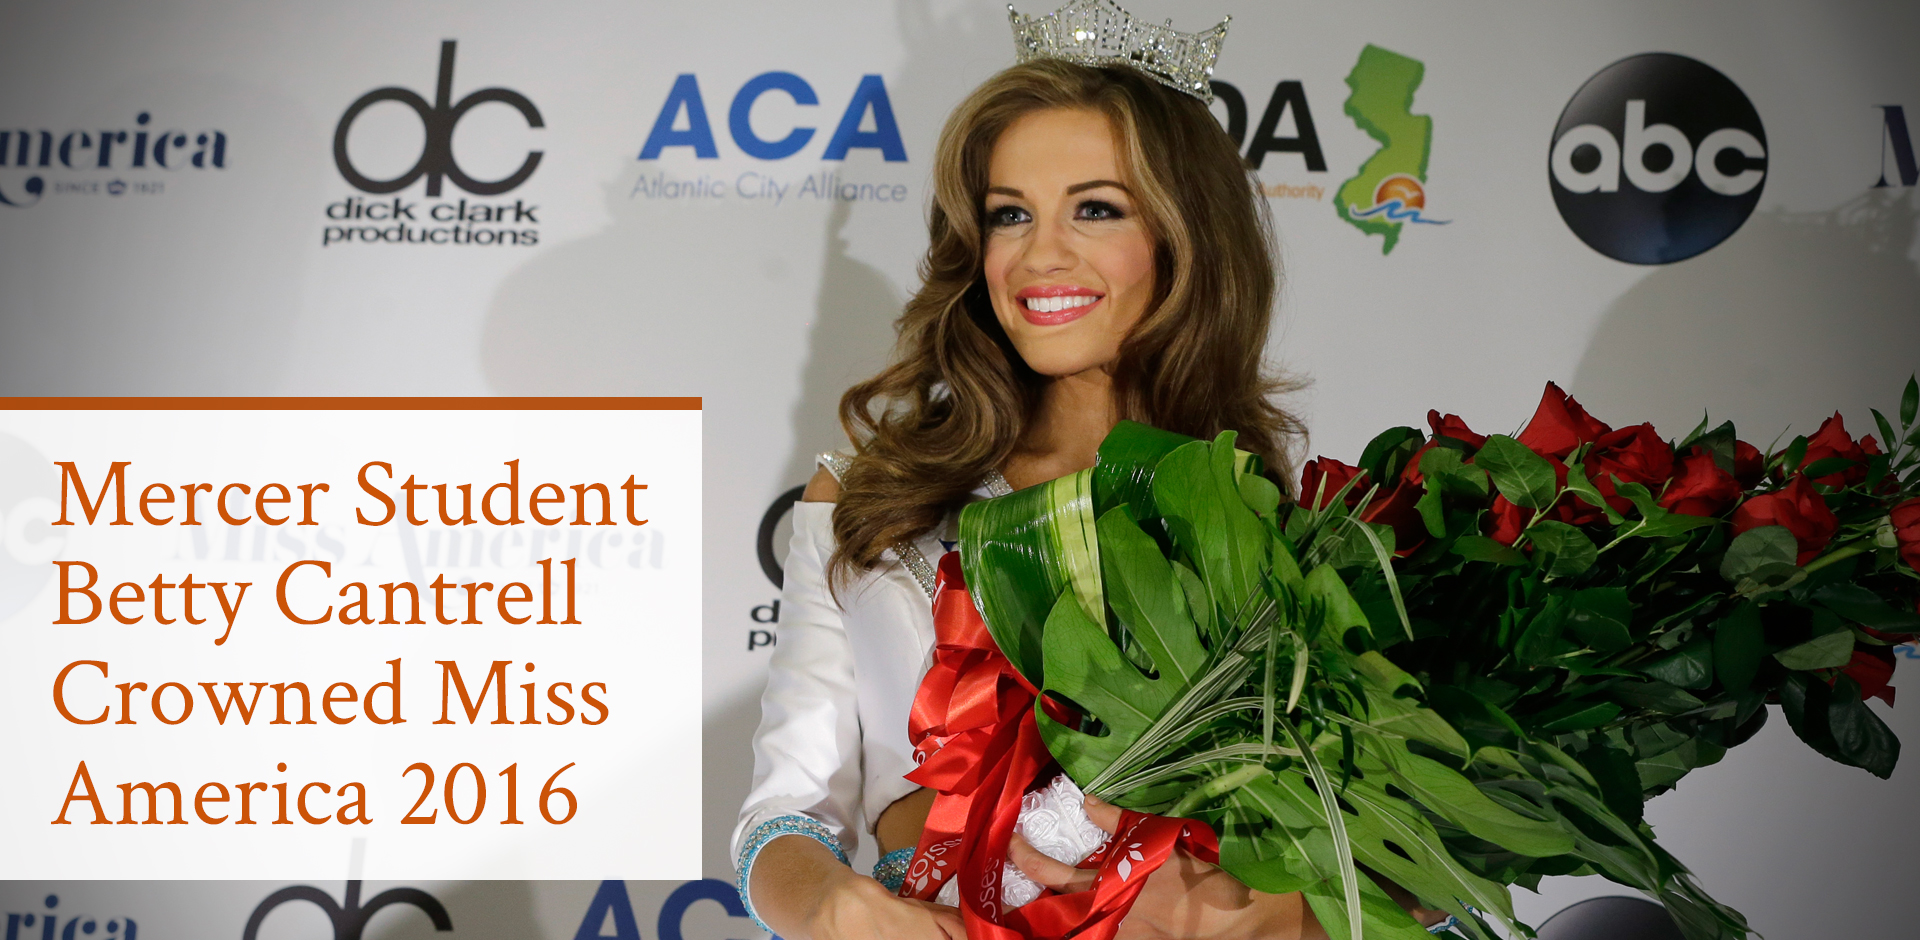 Mercer Student Betty Cantrell Crowned Miss America 2016